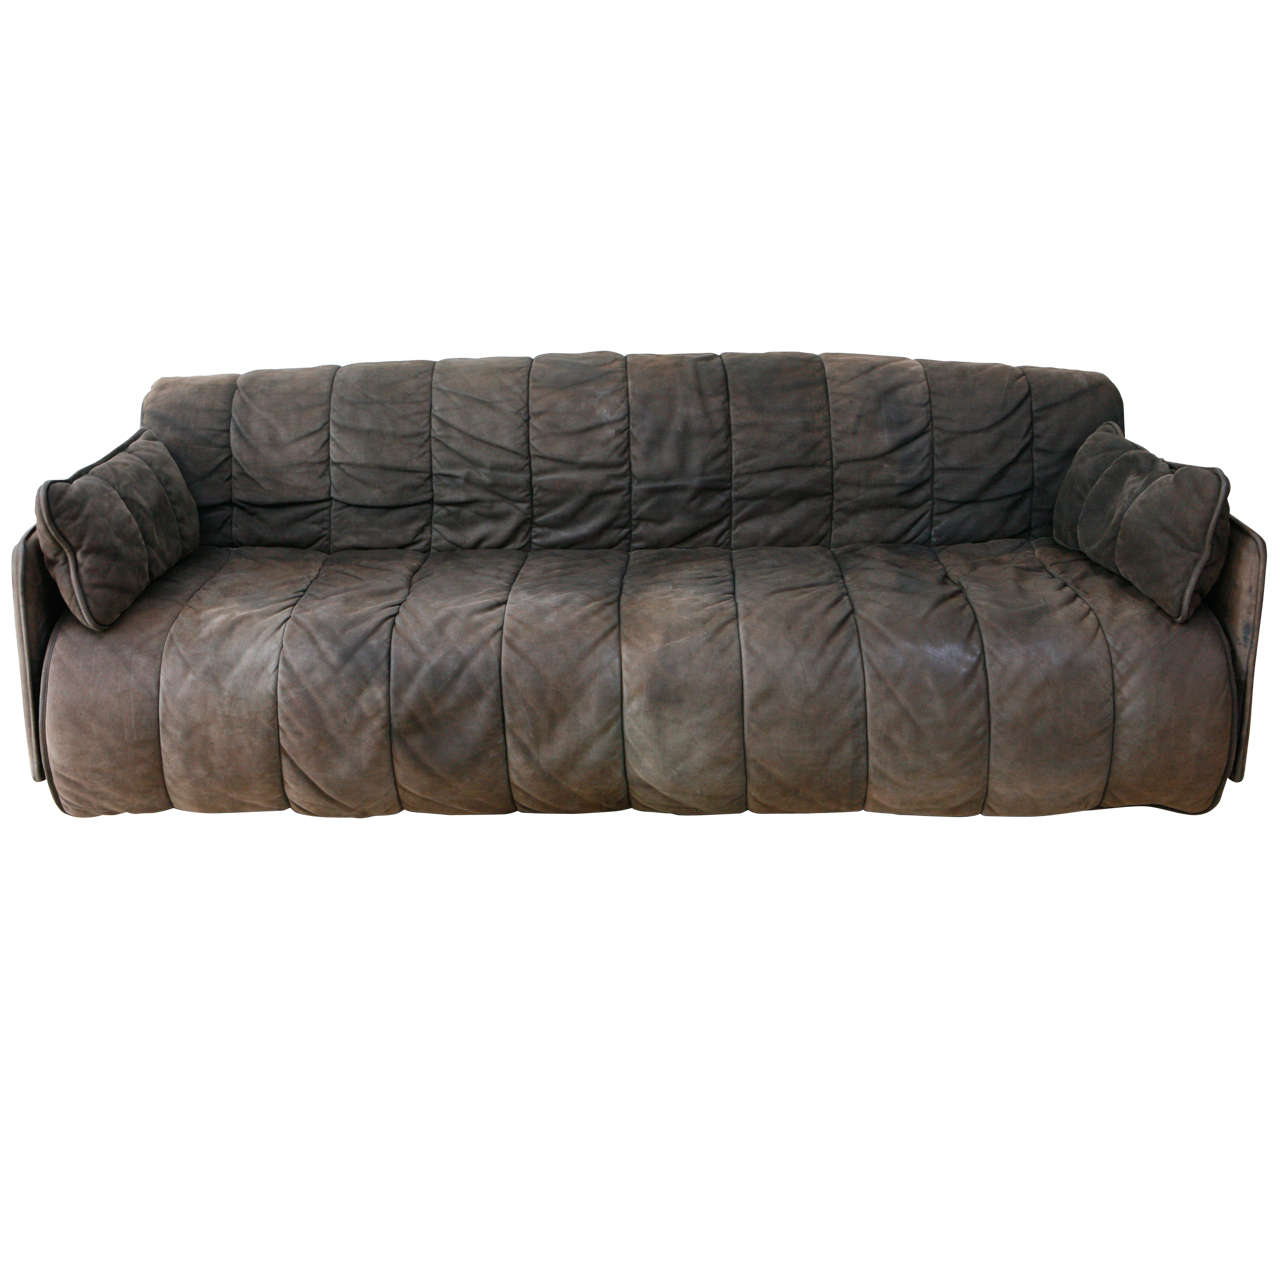 De Sede Convertible Leather Sofa For Sale